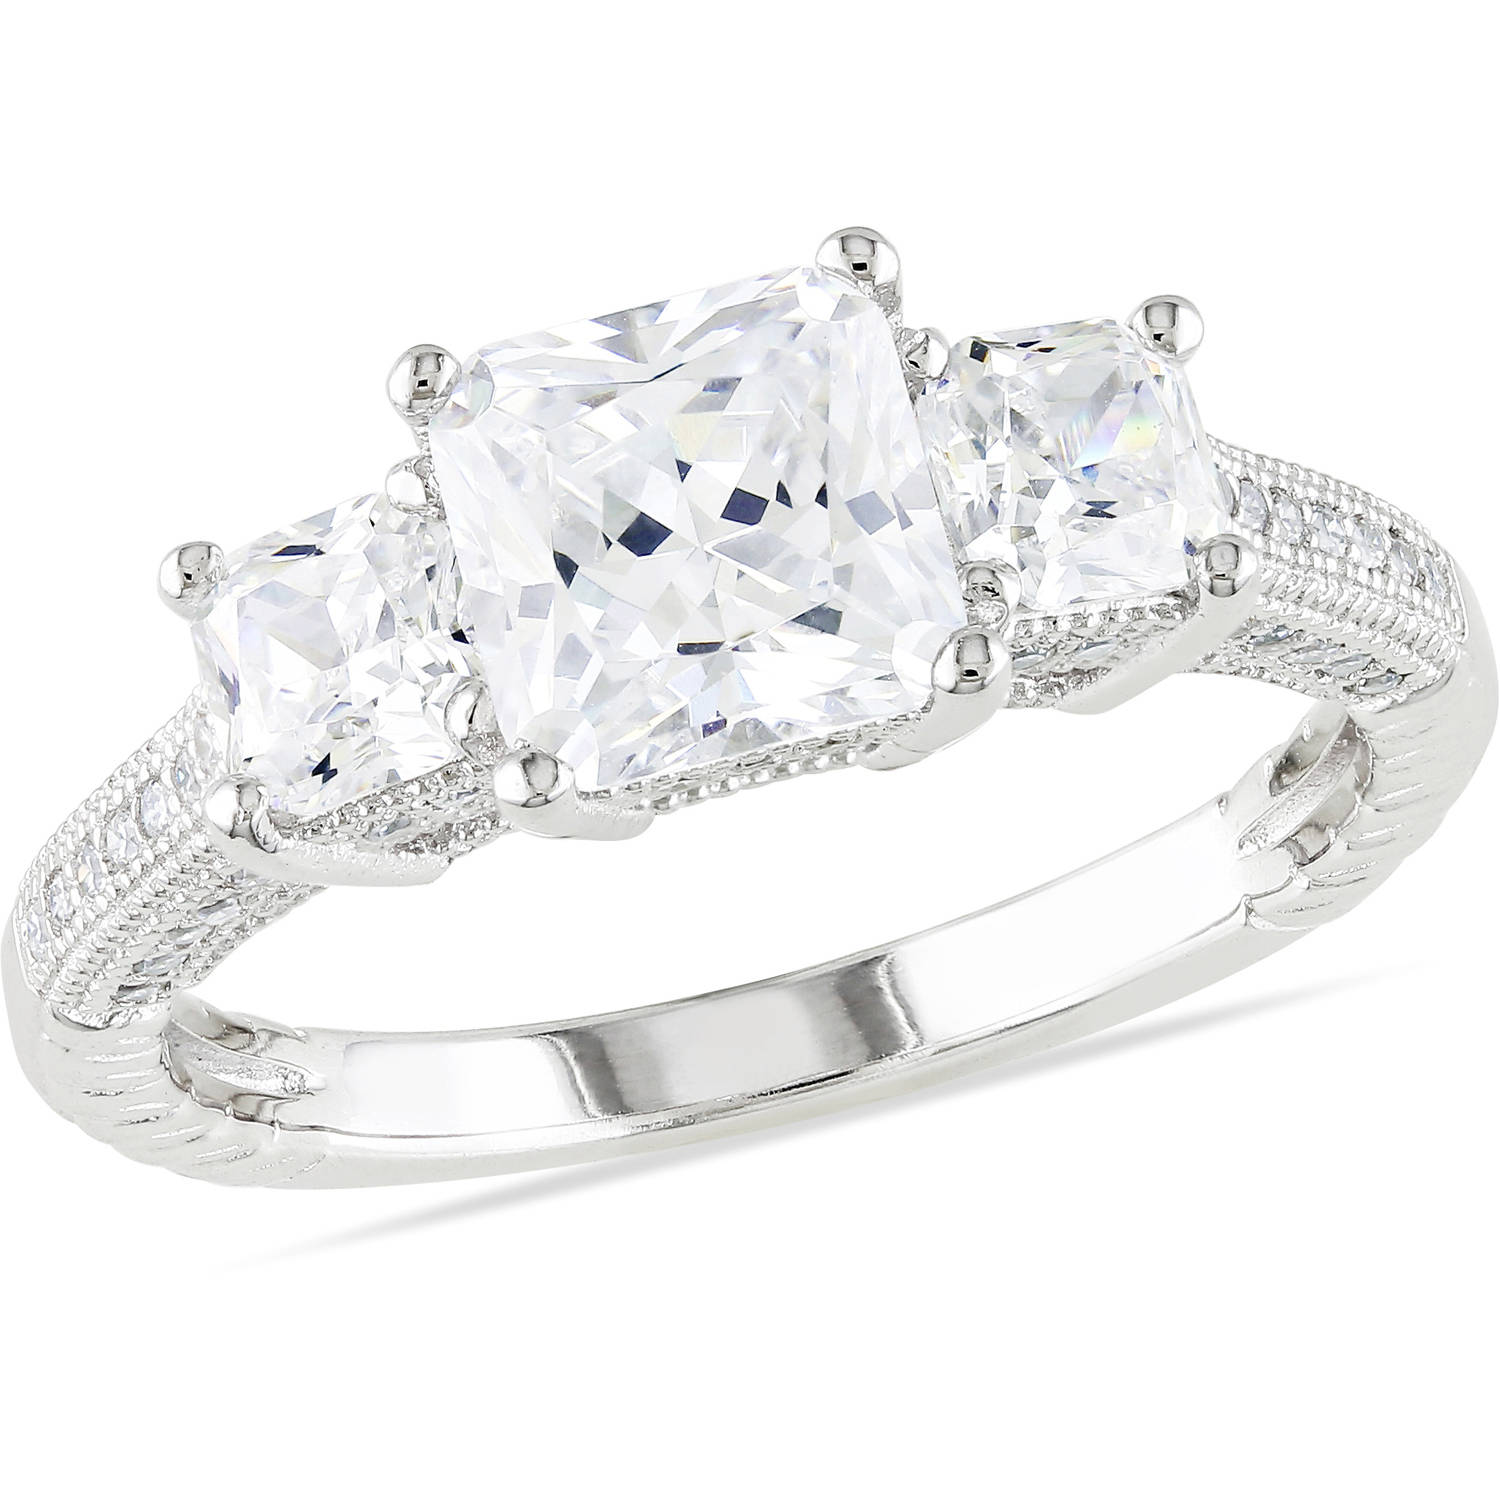 wedding engagement rings walmartcom - Wedding And Engagement Rings